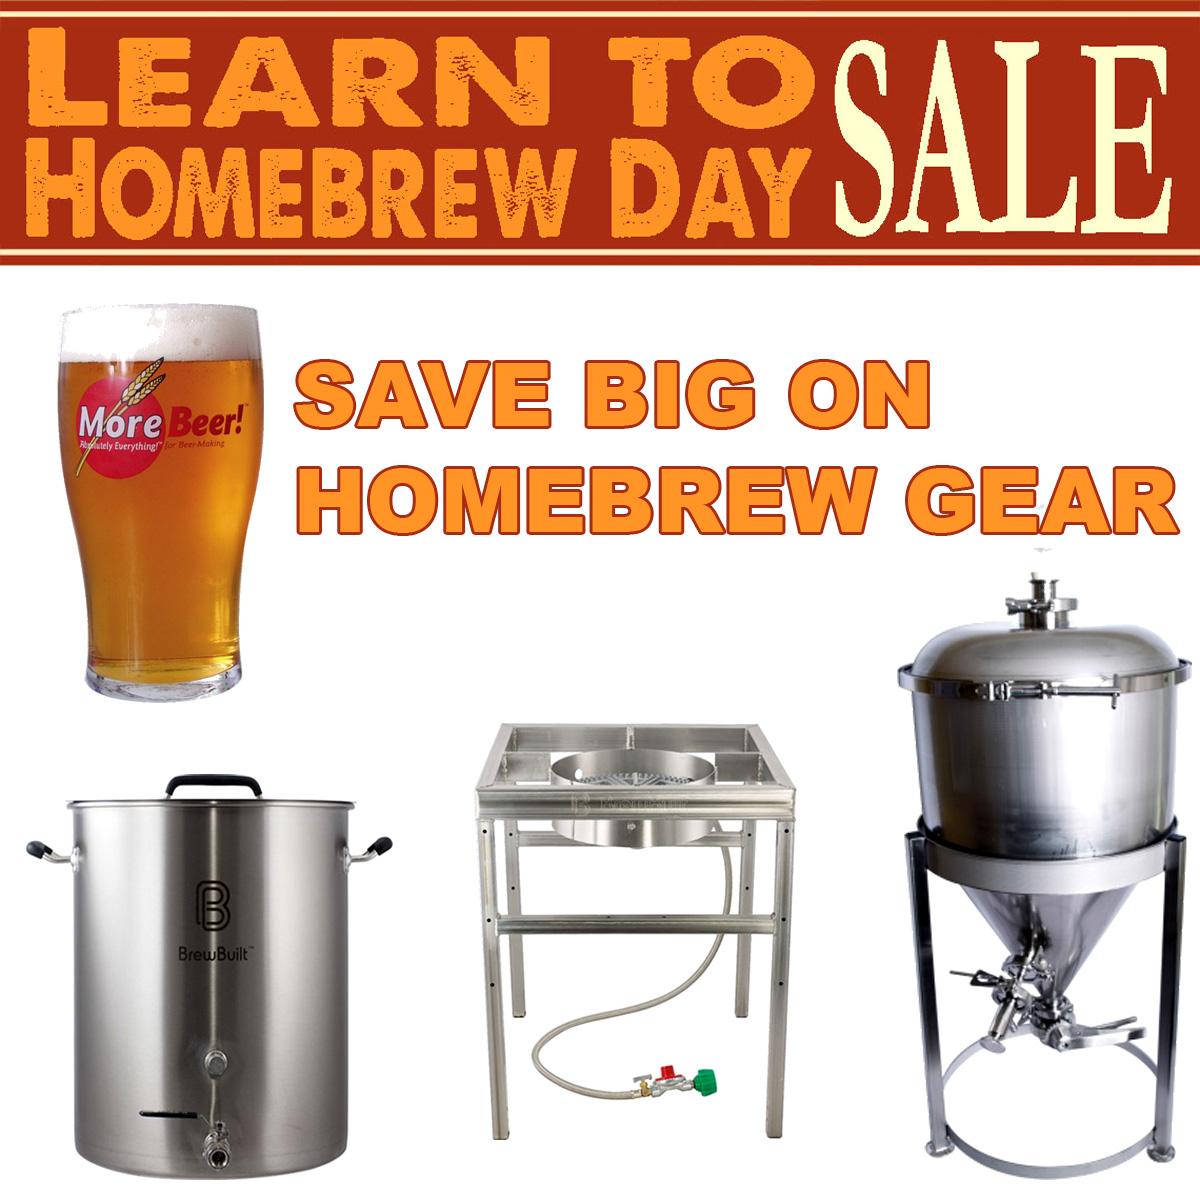 More Beer Promo Code Save Up To 25 On Popular Home